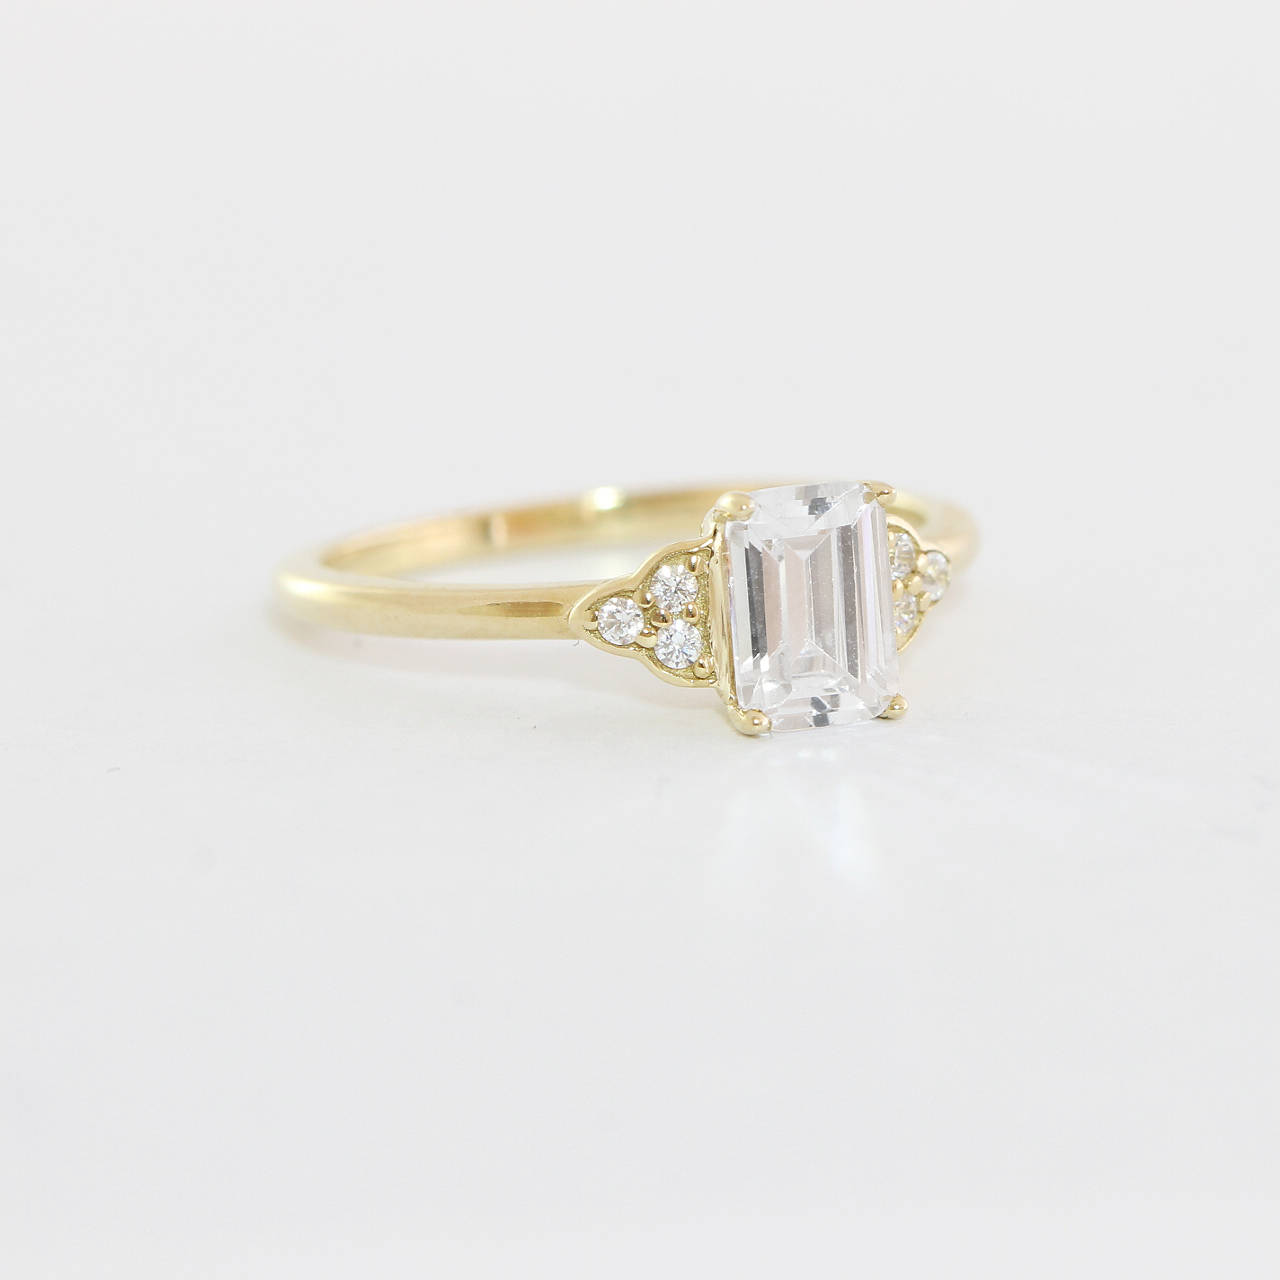 56f7b1808abc1 Emerald cut Moissanite/White Sapphire and Diamond engagement ring antique  1920s inspired handmade in rose/white/yellow gold